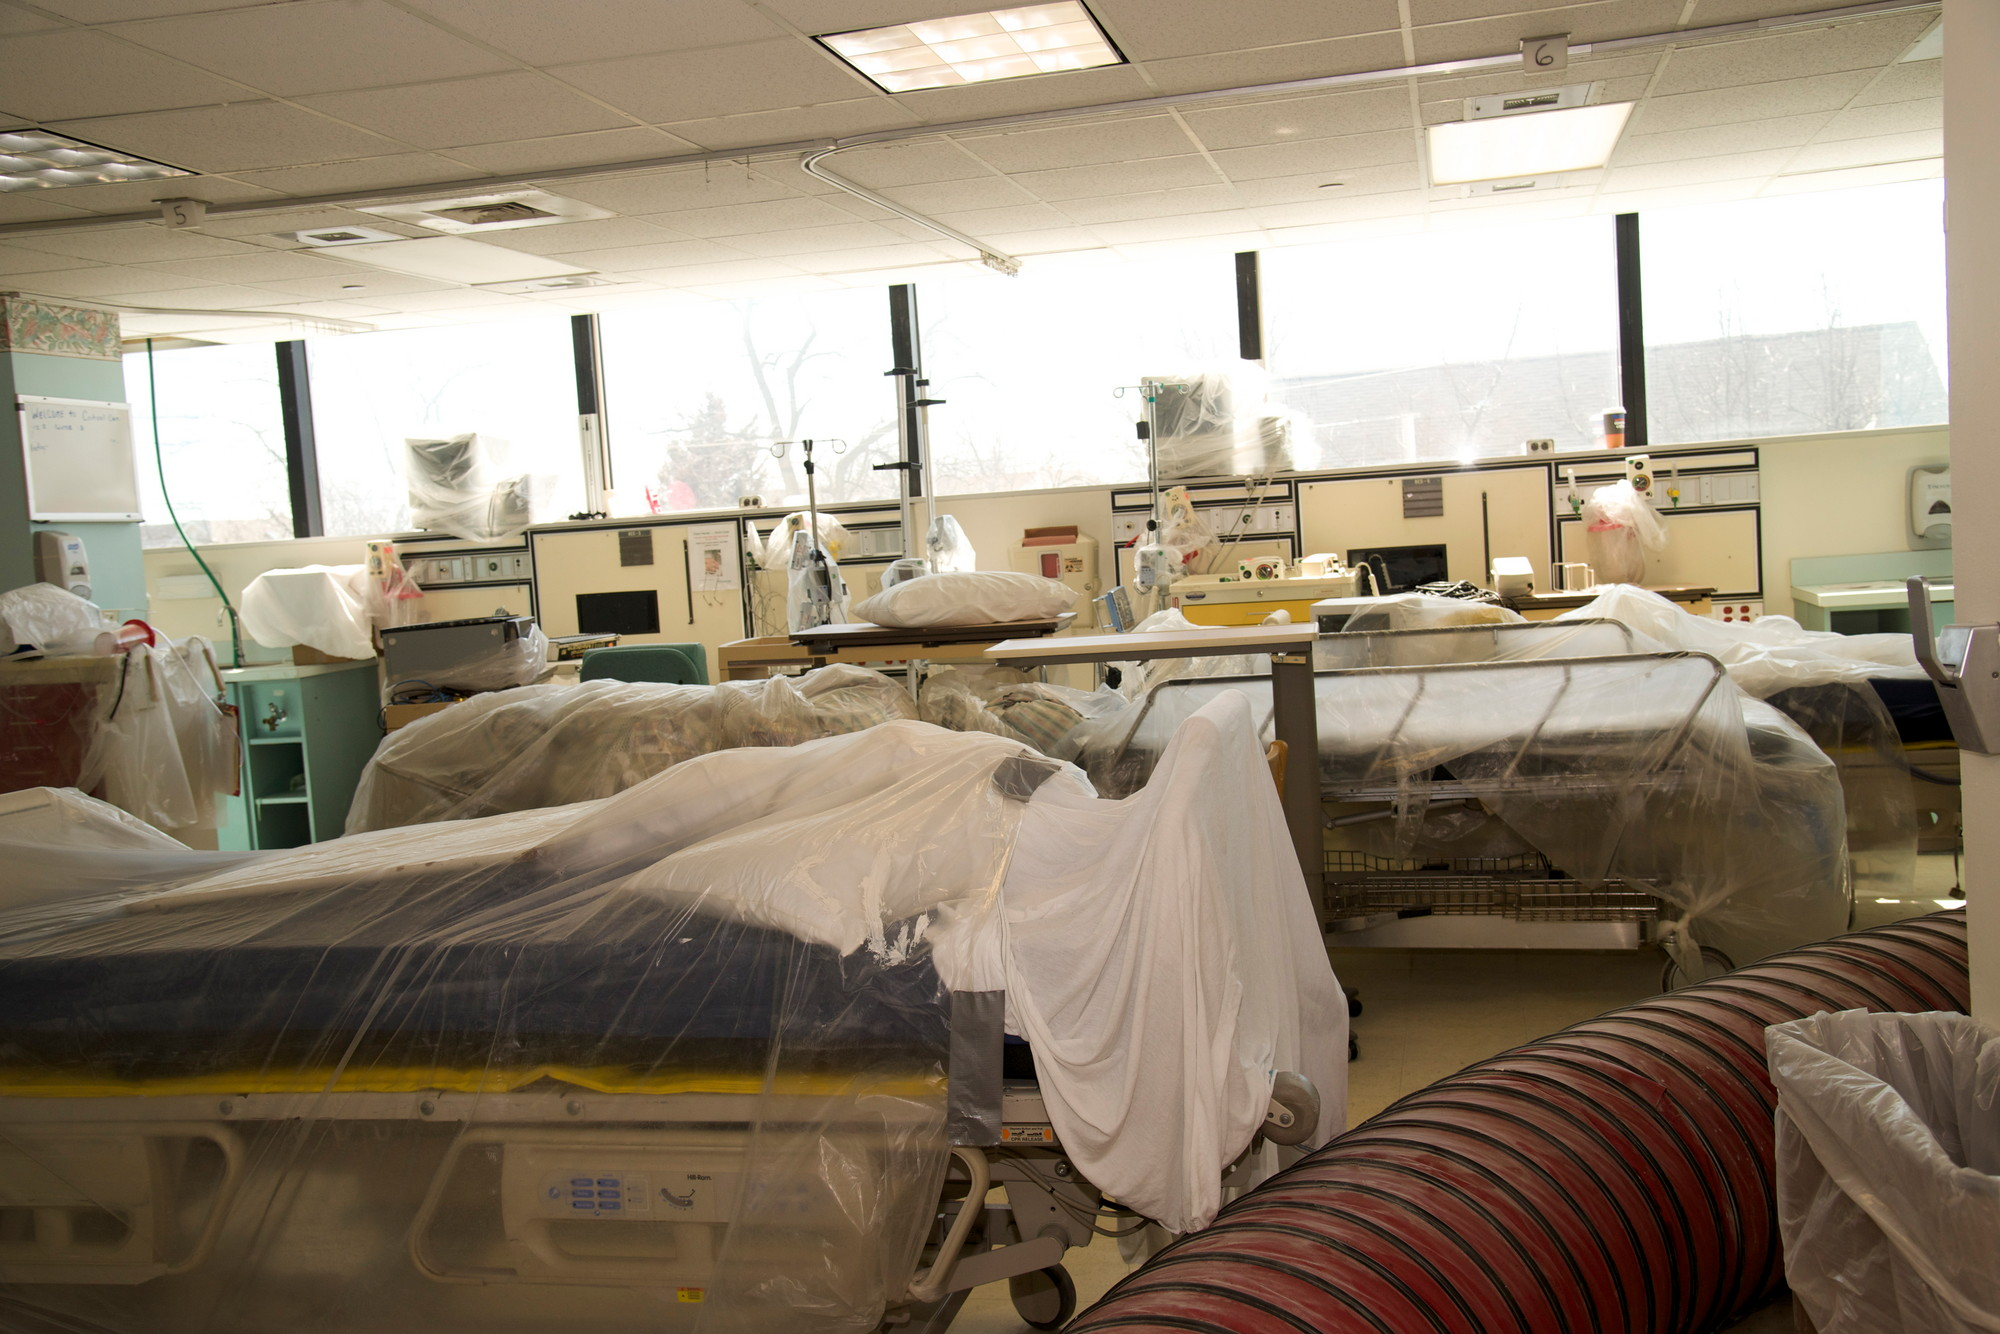 Two of the hospital's five wings, including its emergency department, are slated to reopen this month.